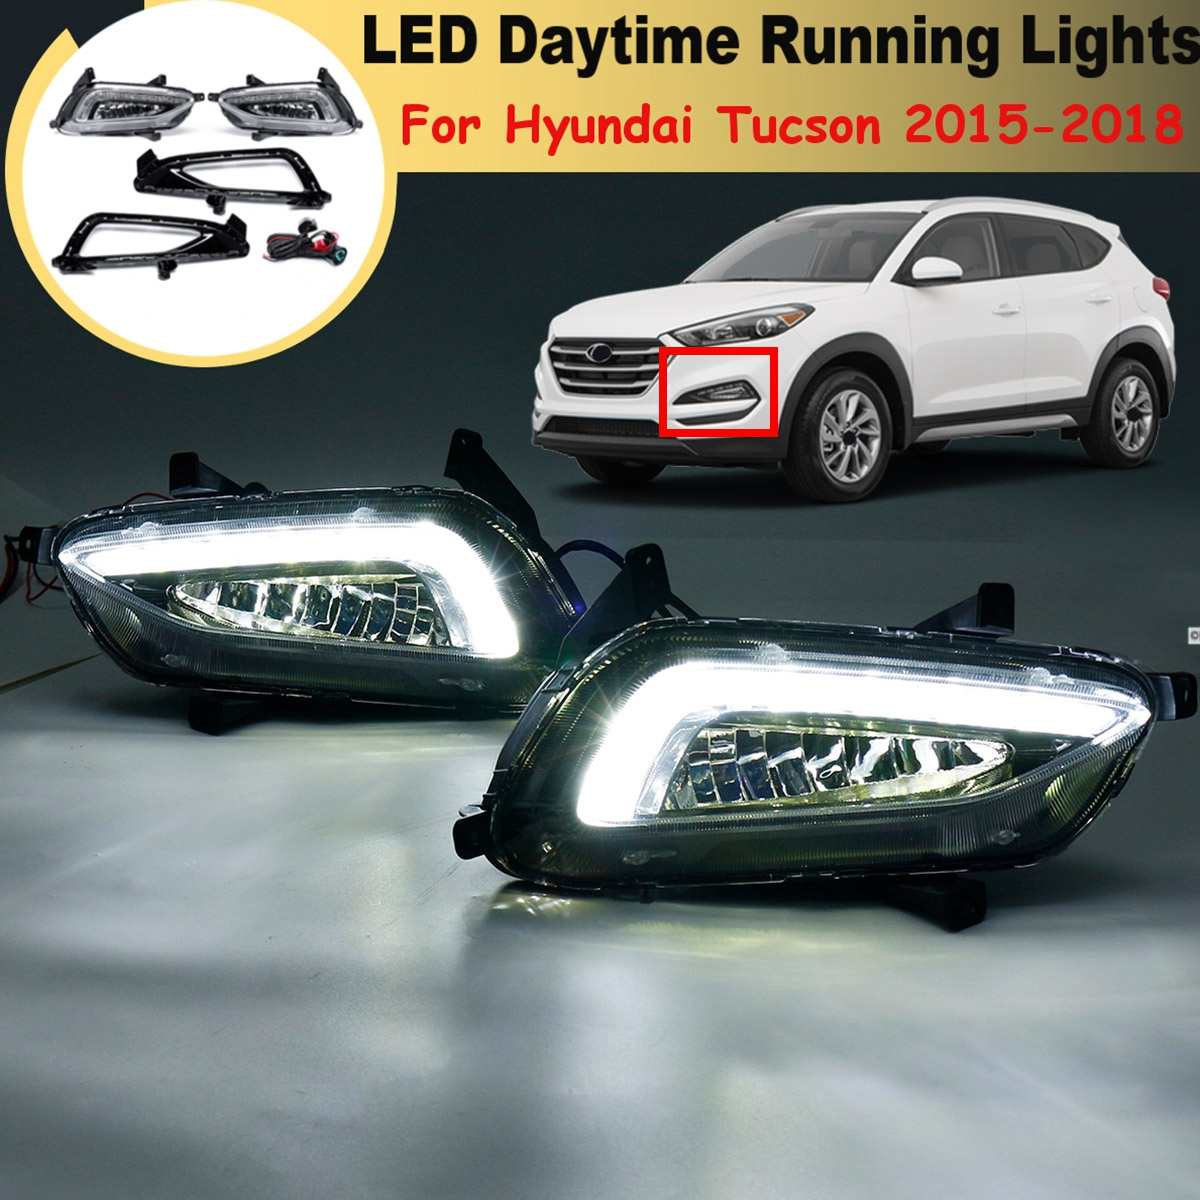 White Led Drl For Hyundai Tucson 2015 2016 2017 2018 Daytime Running Lights Daylight 12V Fog Lamp Cover Car Styling Accessories